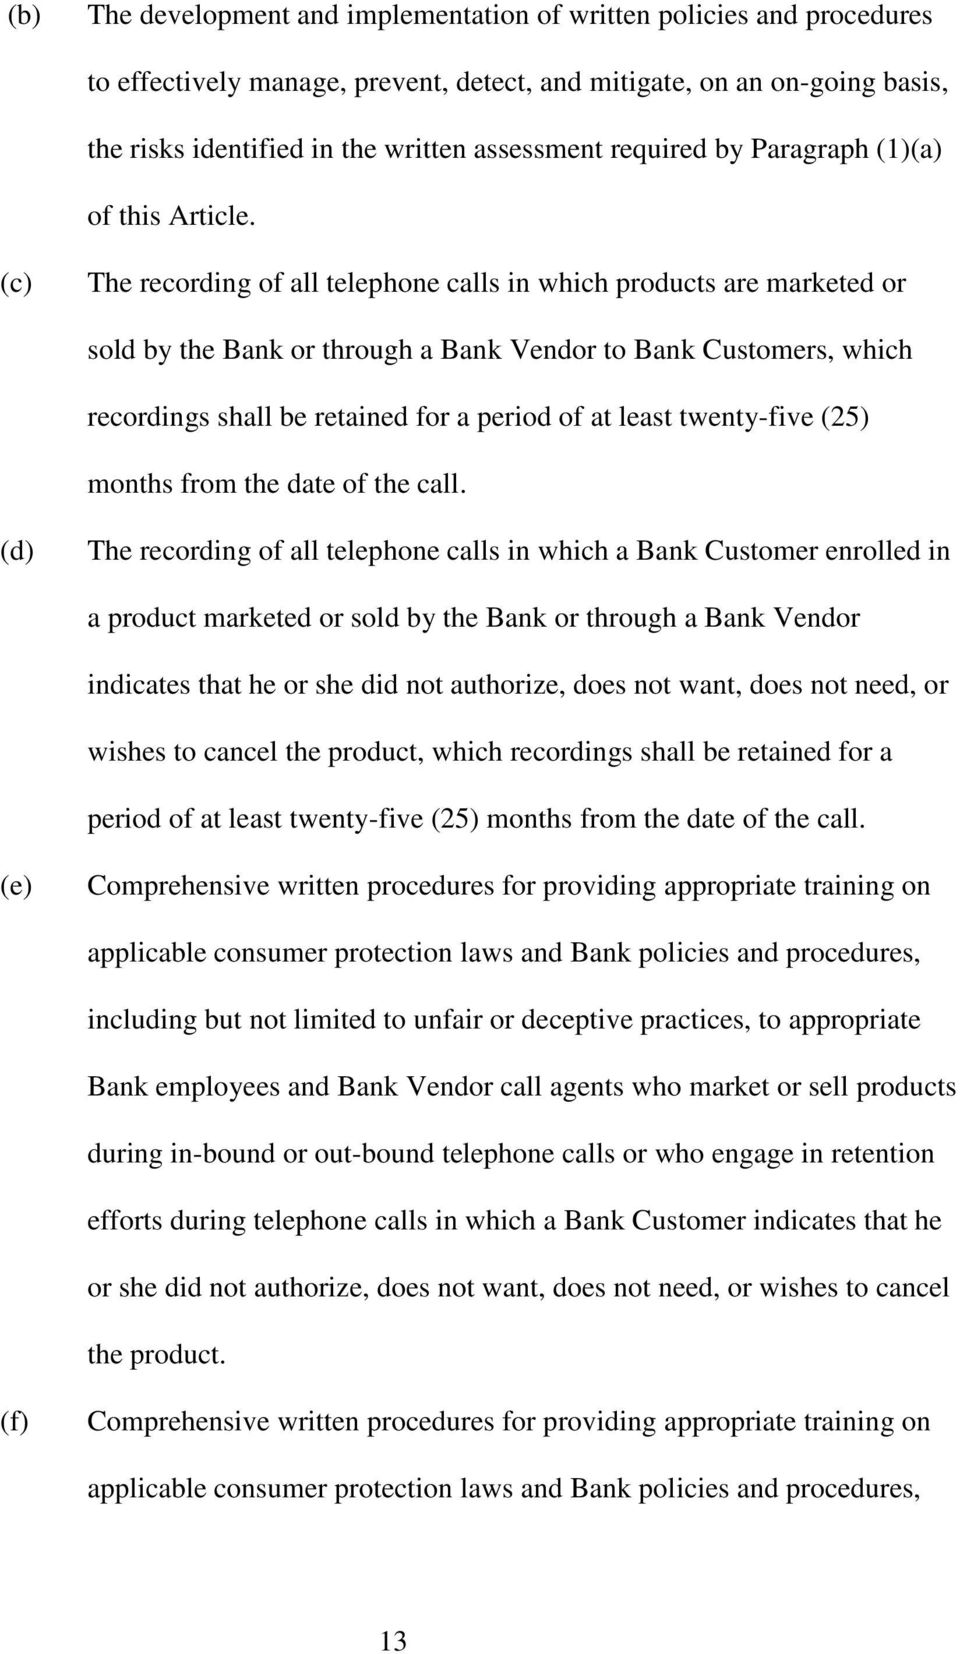 (c The recording of all telephone calls in which products are marketed or sold by the Bank or through a Bank Vendor to Bank Customers, which recordings shall be retained for a period of at least